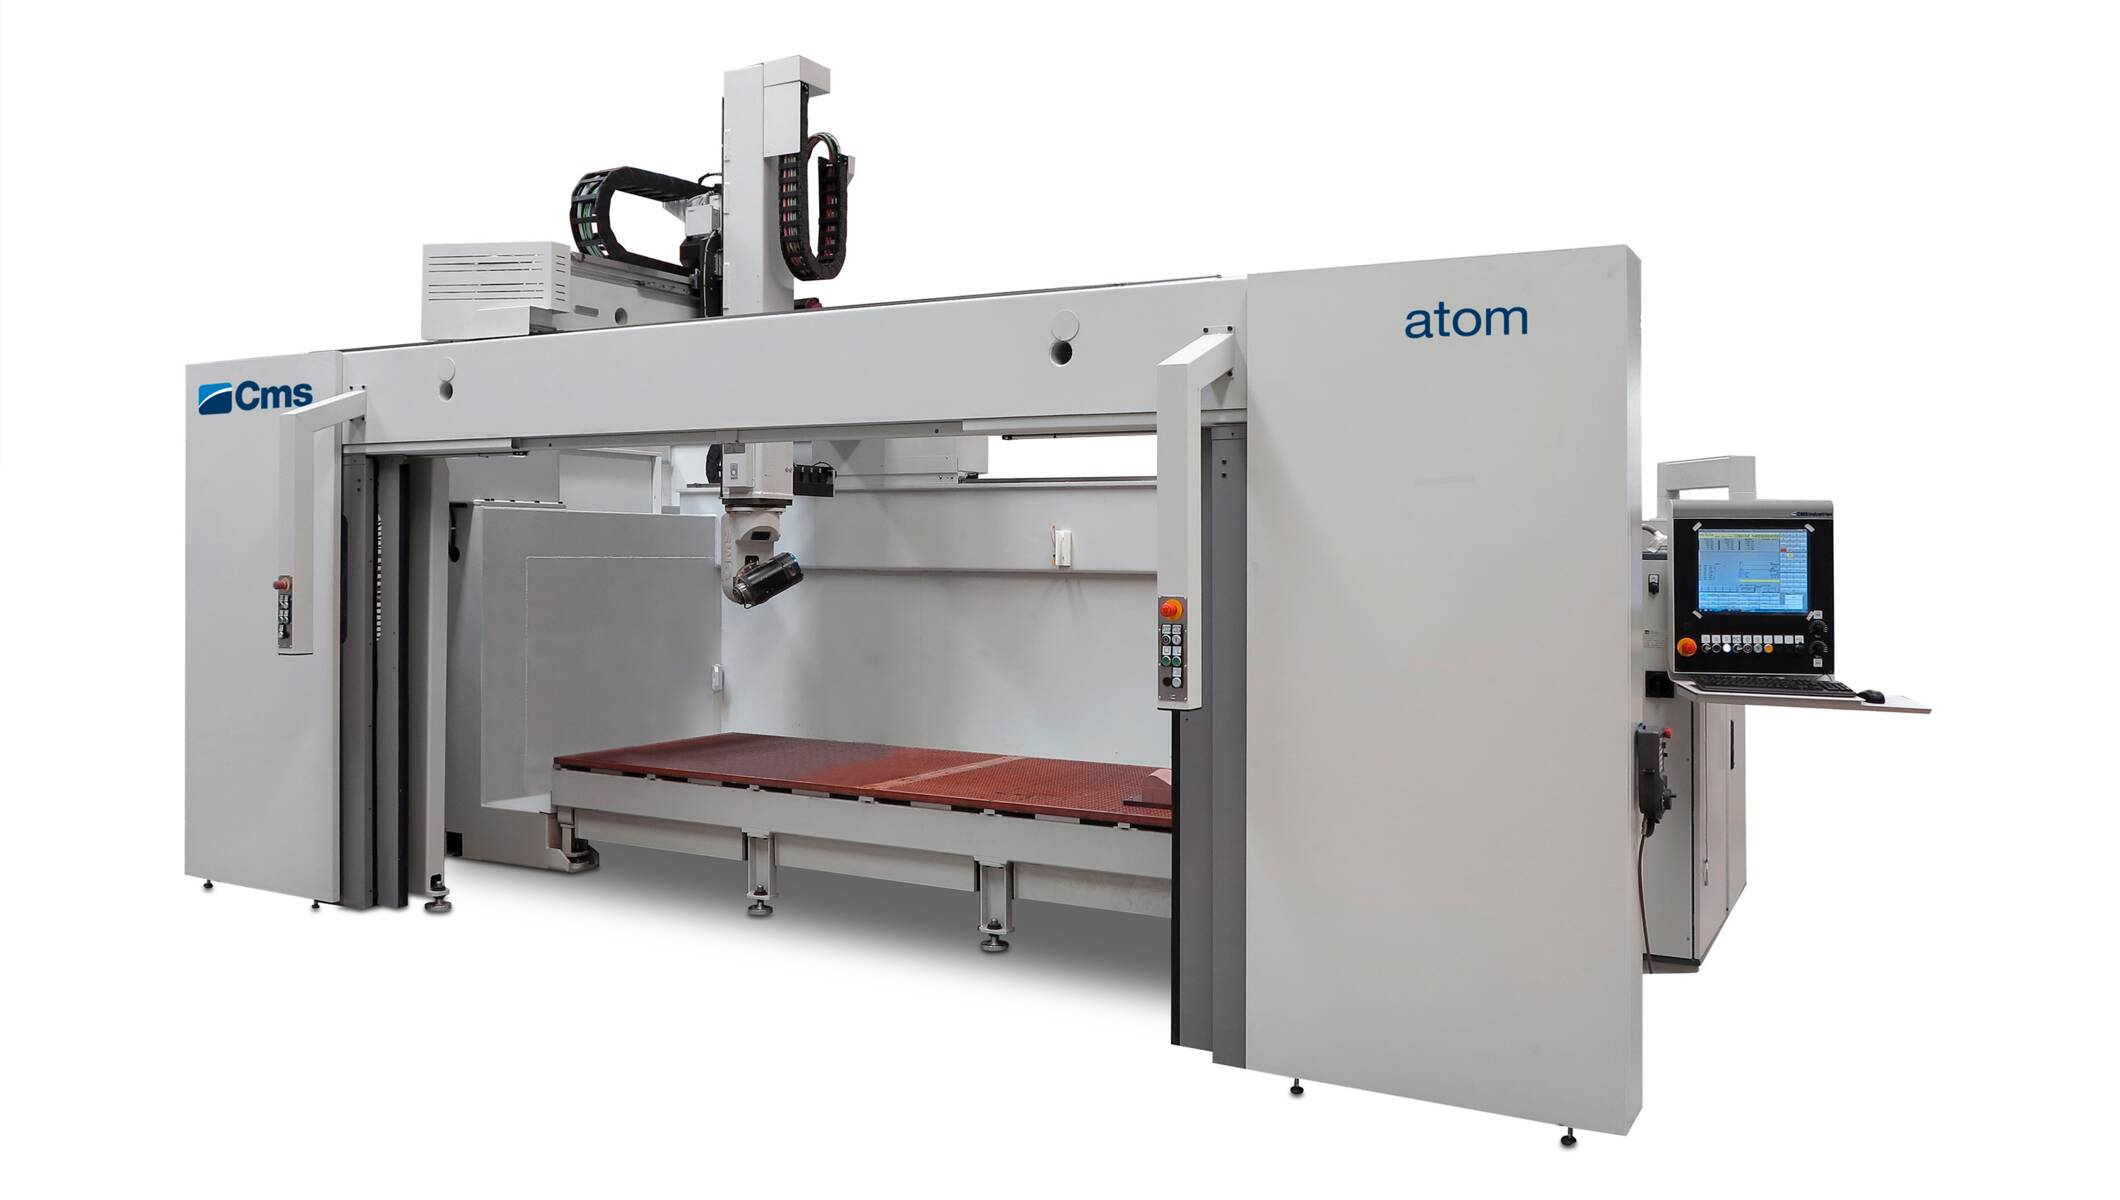 Plastic processing - 5-axis CNC machining centers - atom